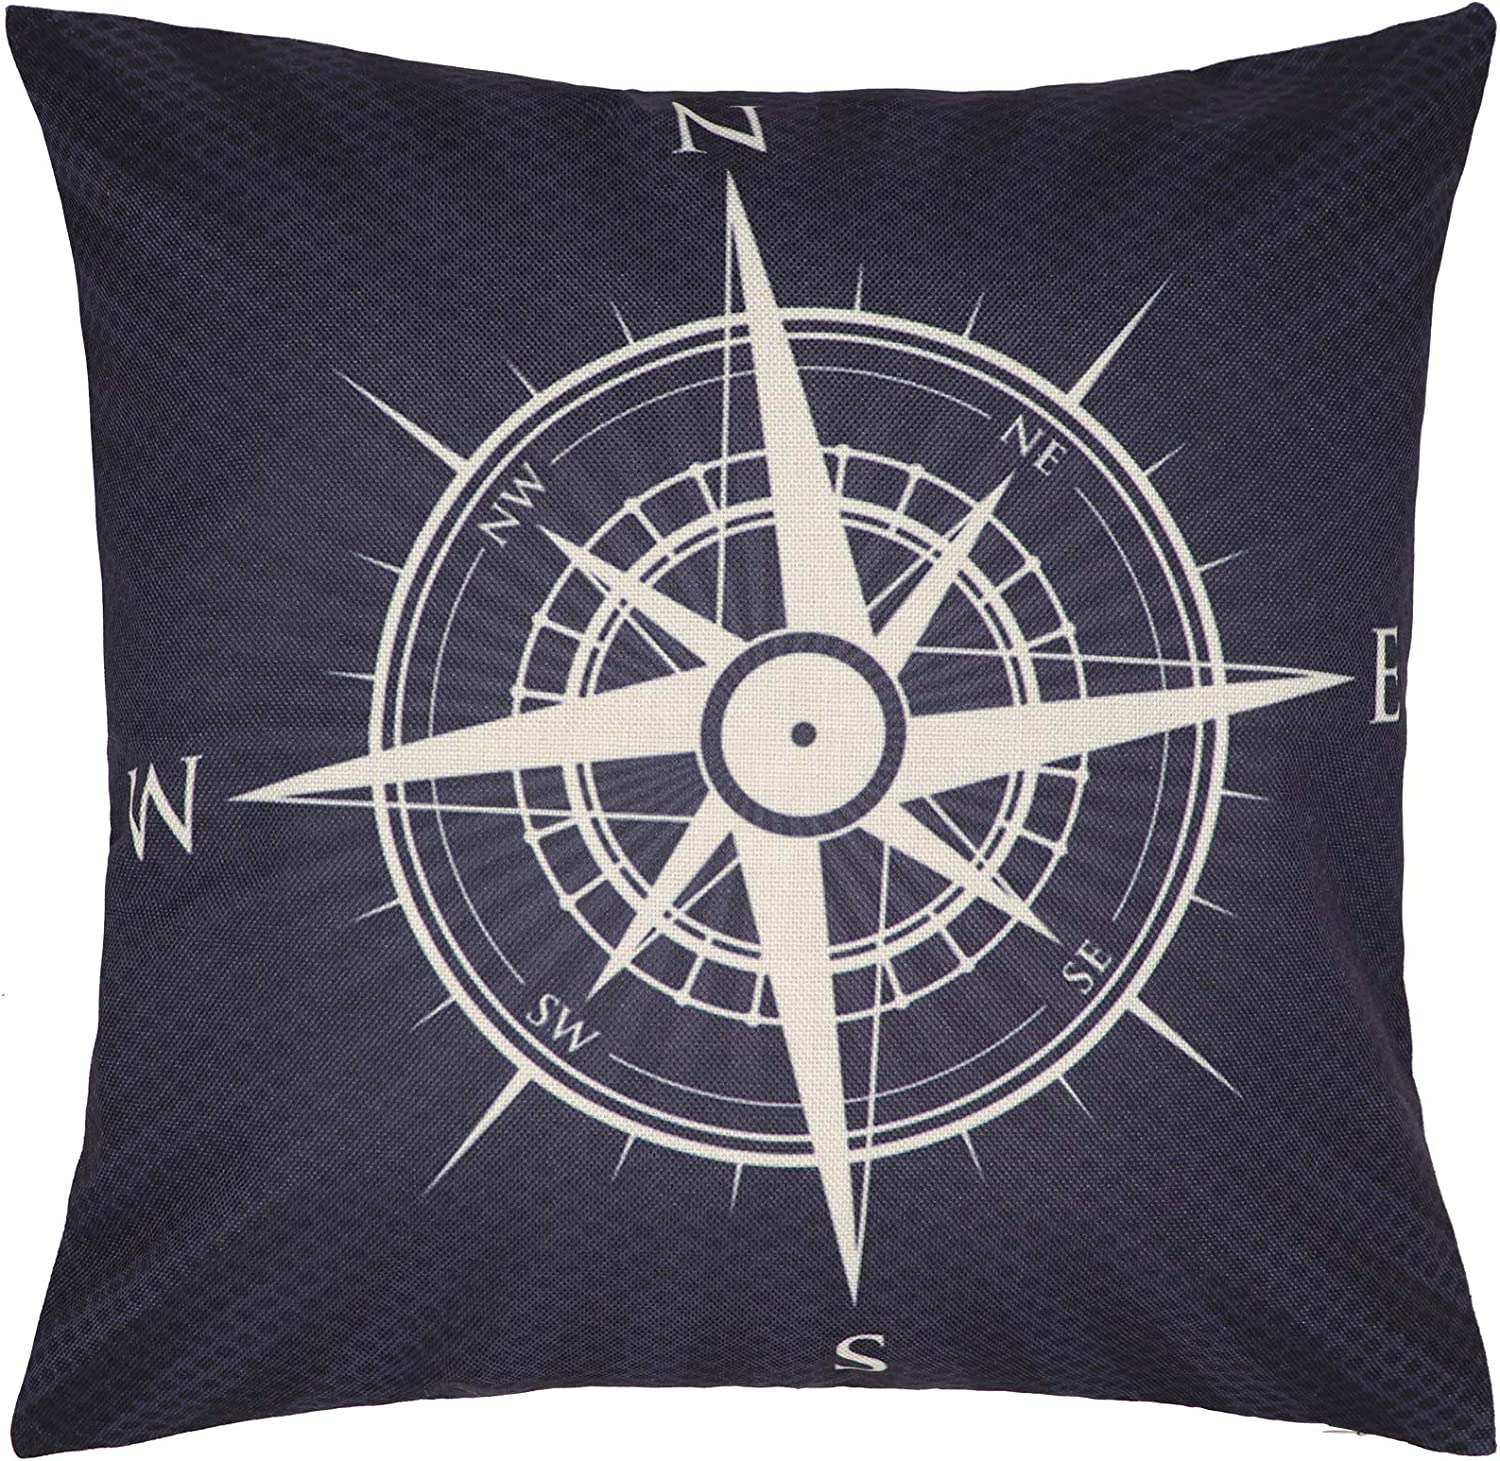 NAVIBULE Nautical Decor Throw Pillow Cover North South West East Words Compass Navigation Pillowcase Decorative Cushion Cover for Couch Bed Home 18x18 Inches Black and Gray